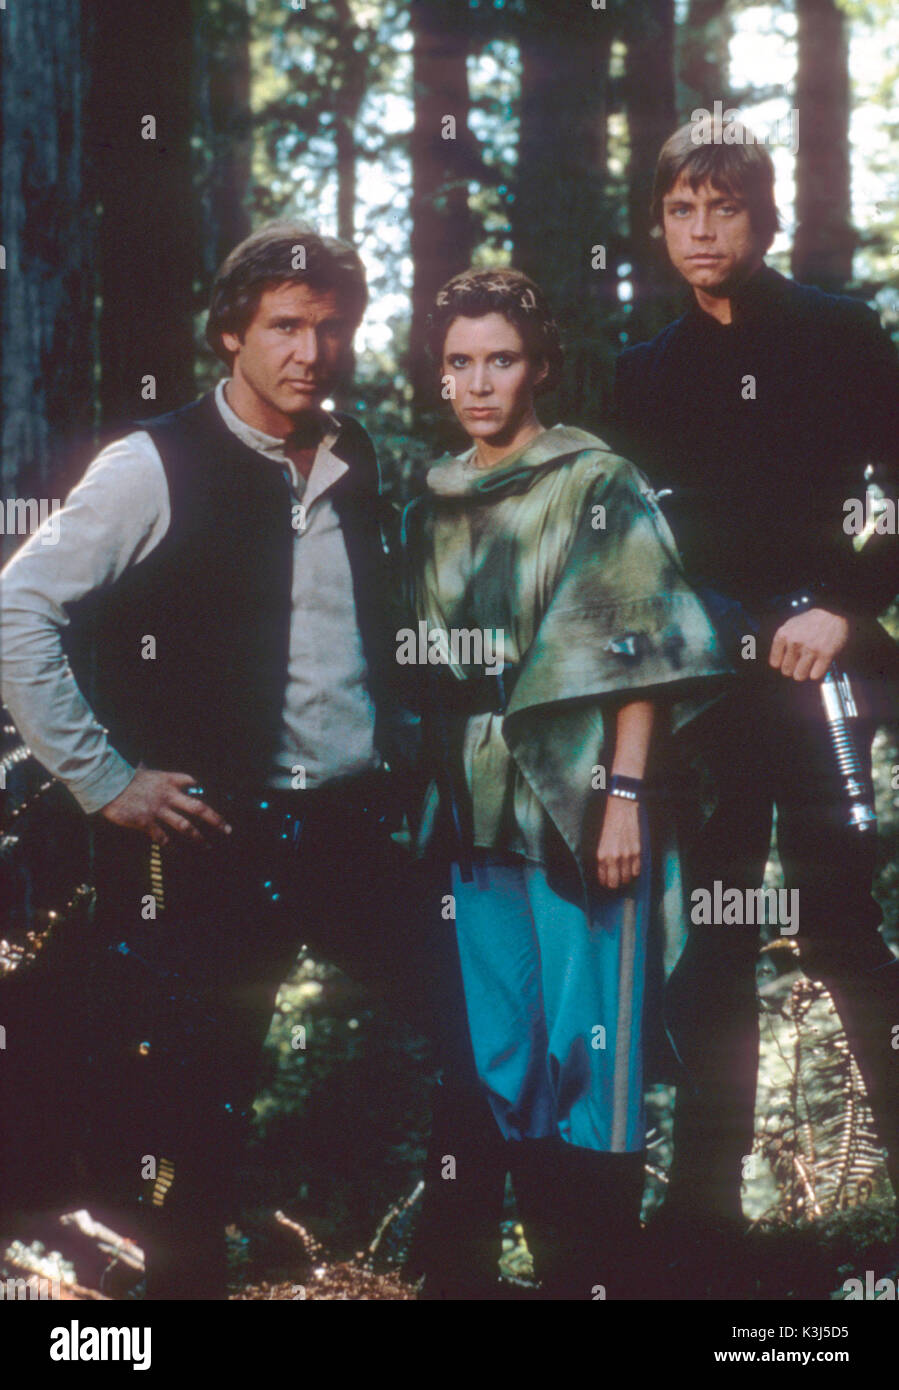 STAR WARS: EPISODE VI - RETURN OF THE JEDI HARRISON FORD as Han Solo, CARRIE FISHER as Princess Leia, MARK HAMILL as Luke Skywalker     Date: 1983 - Stock Image